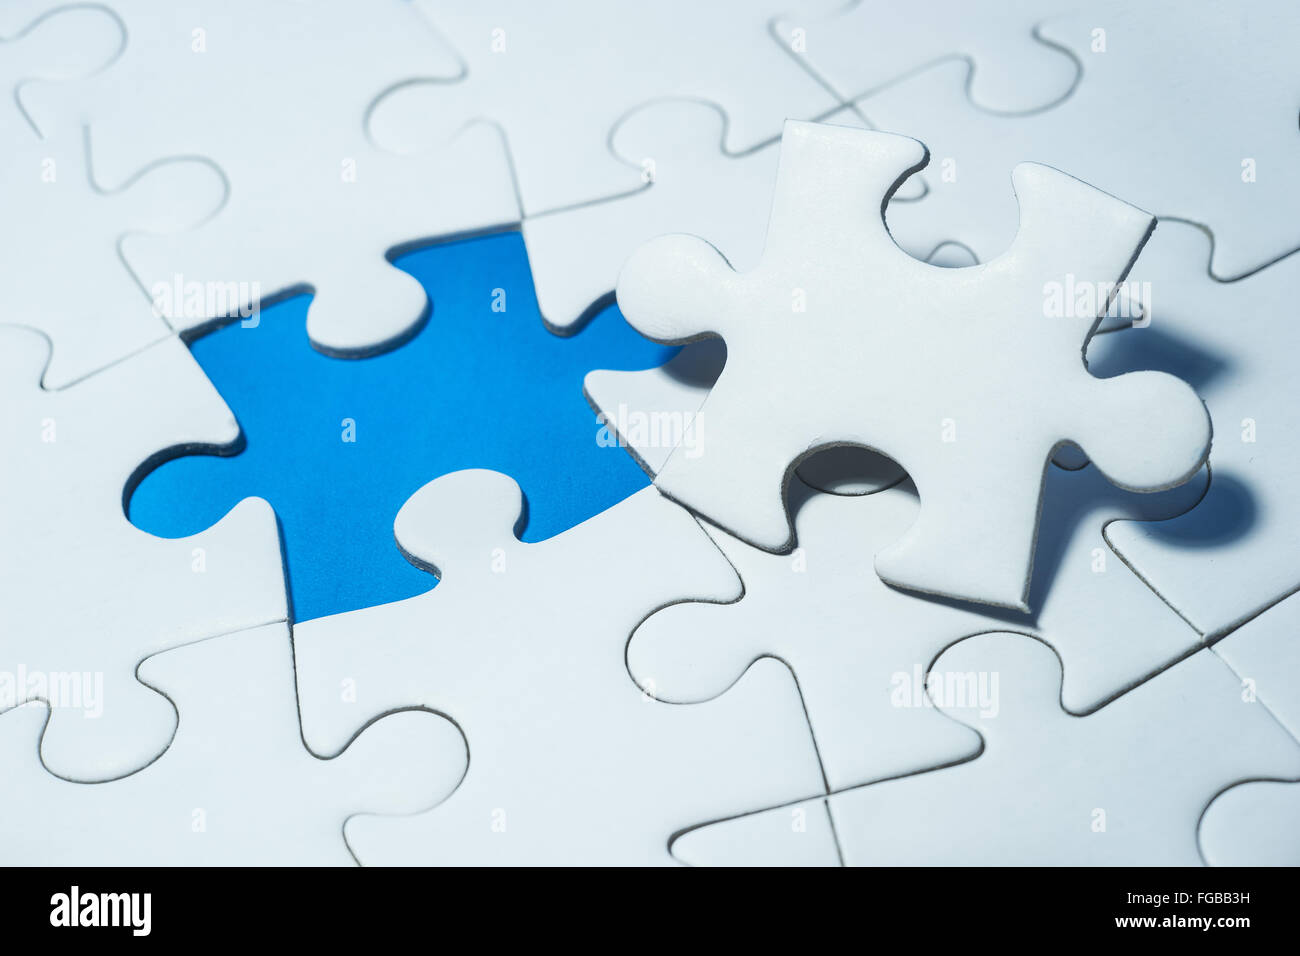 High Angle View Of Incomplete Jigsaw Puzzle - Stock Image